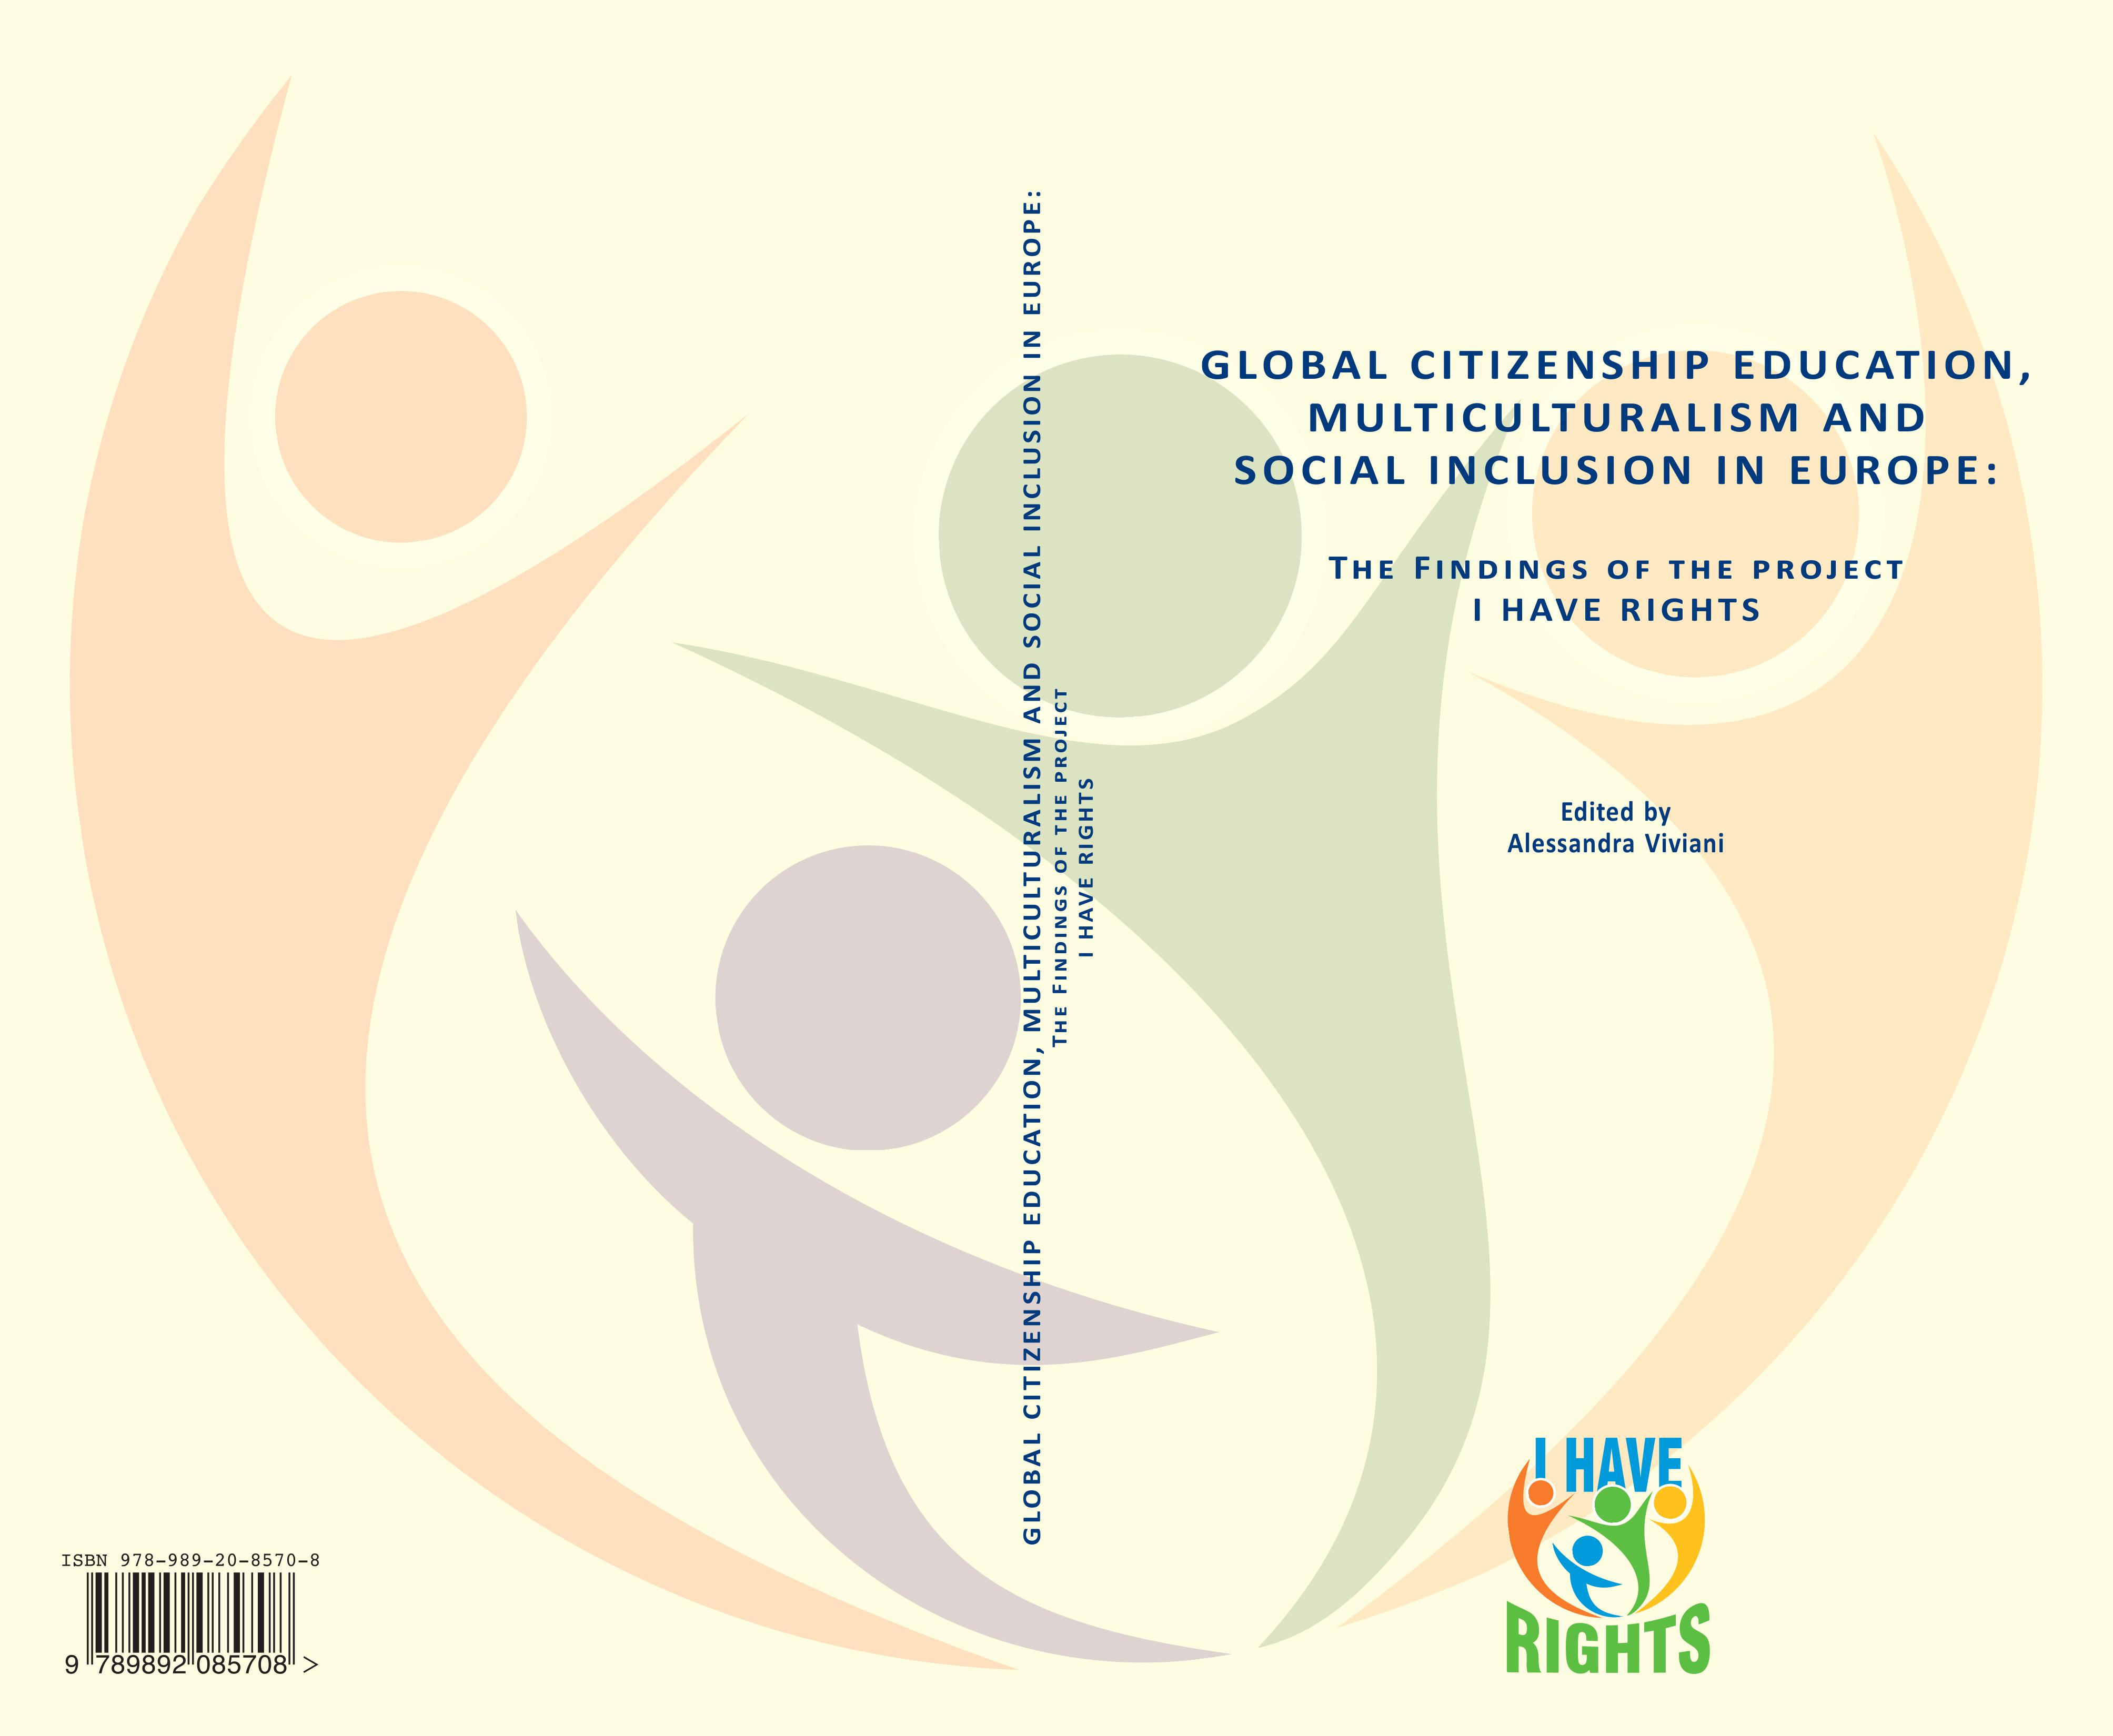 Global Citizenship Education Multiculturalism and Social Inclusion in Europe (2018)